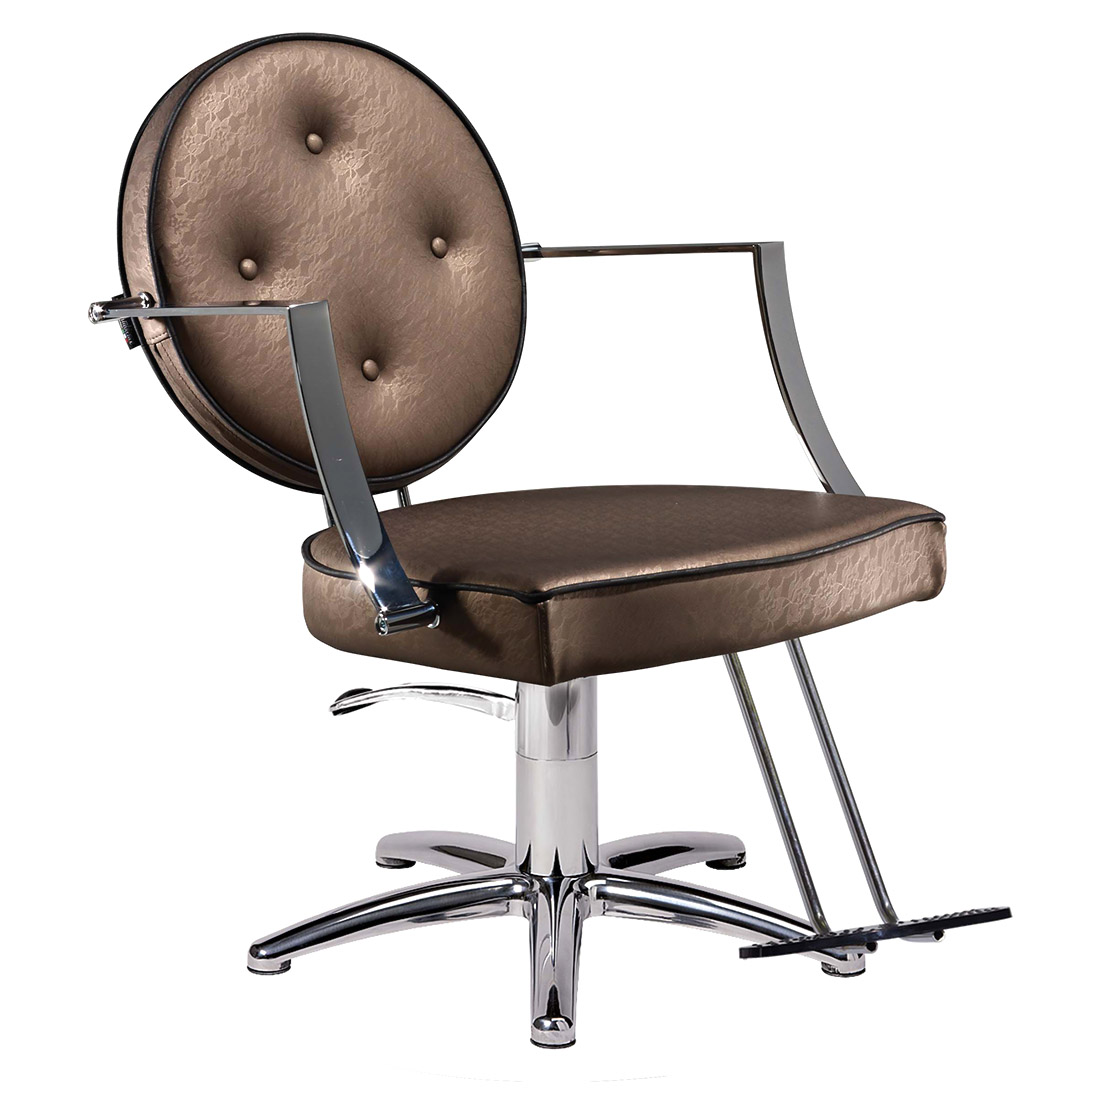 Camille Beauty Salon Chair by Salon Ambience alternative product image 1